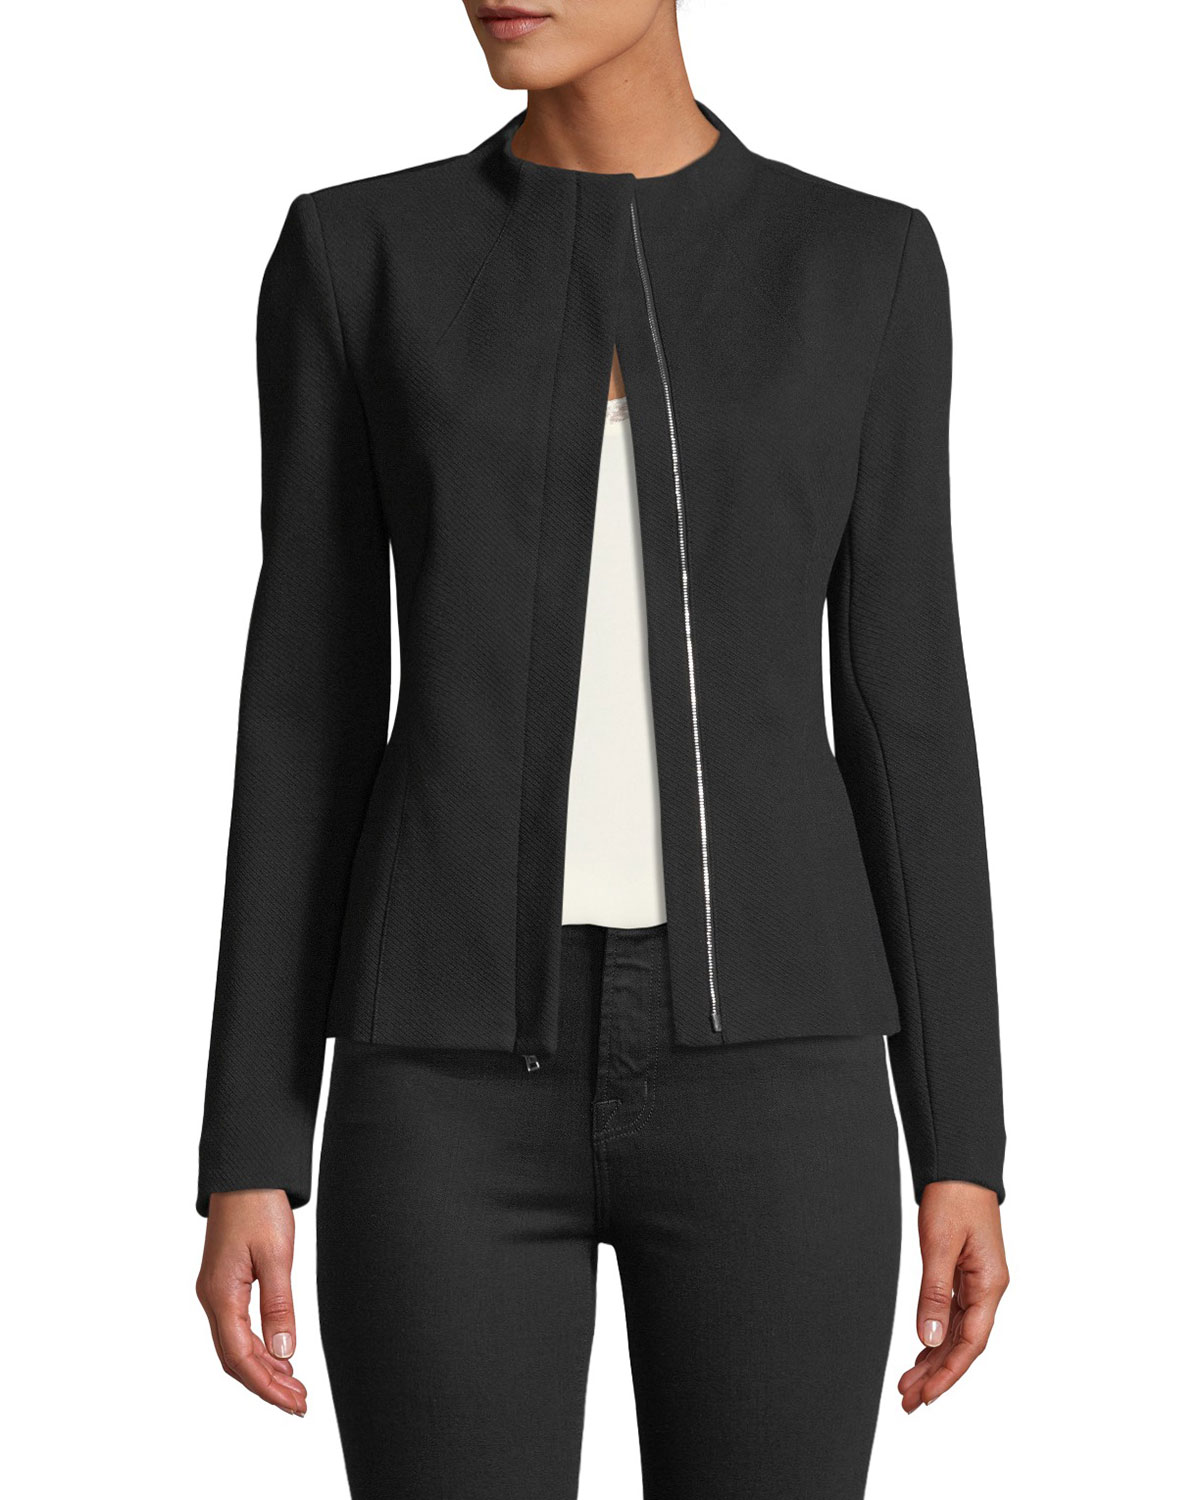 40fa980687 Theory Sculpted Knit Twill 2 Jacket | Neiman Marcus